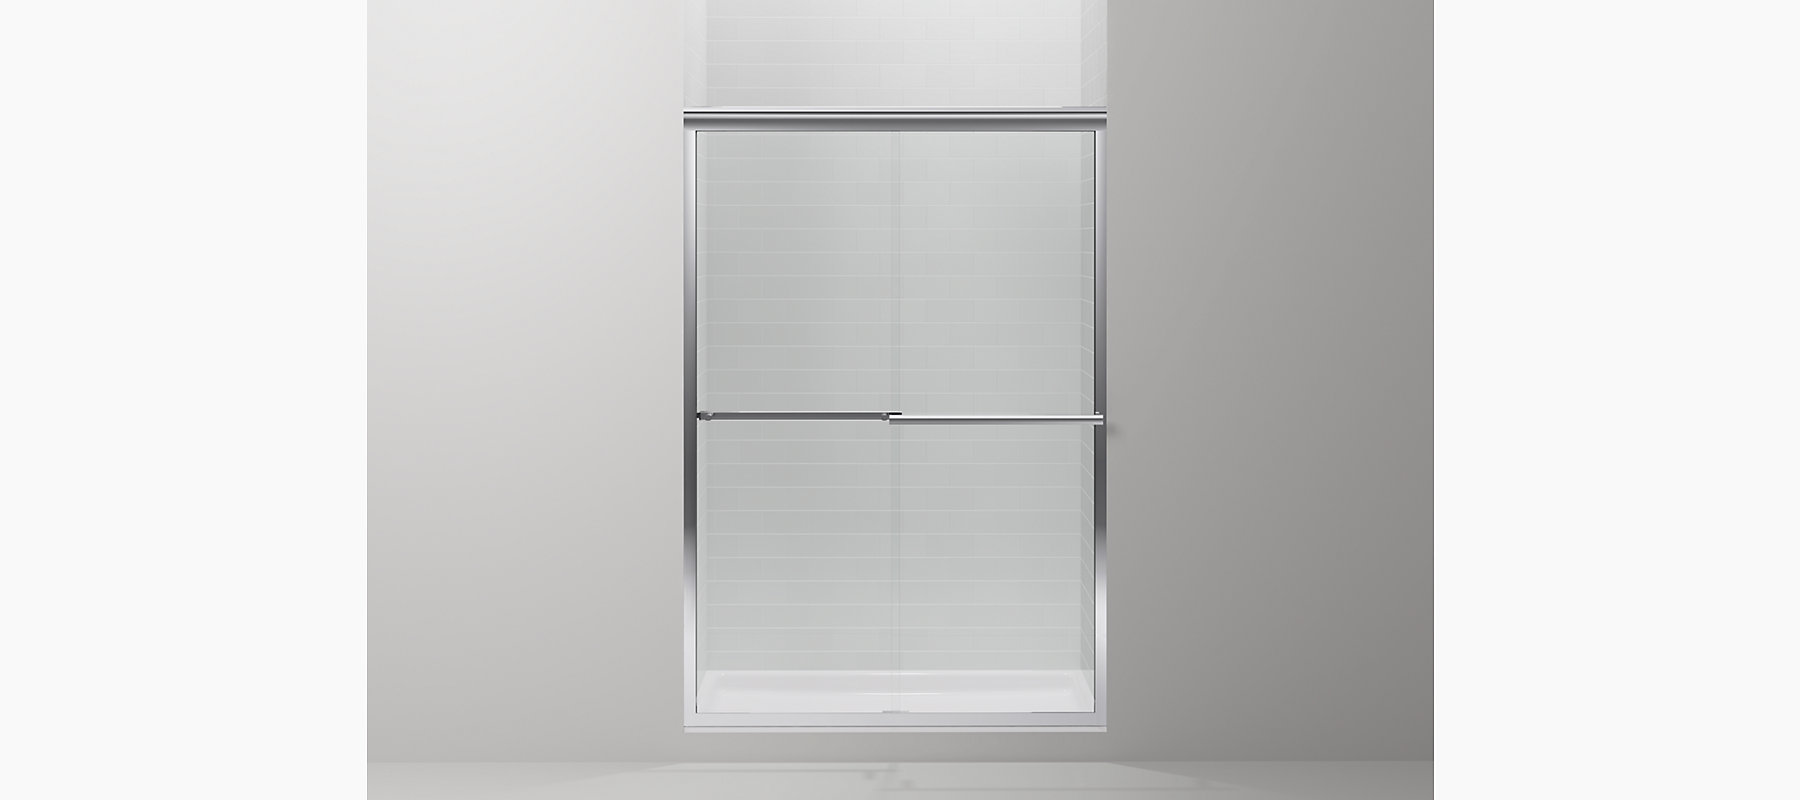 Gradient frameless sliding shower door k r709063 l kohler discontinued vtopaller Gallery